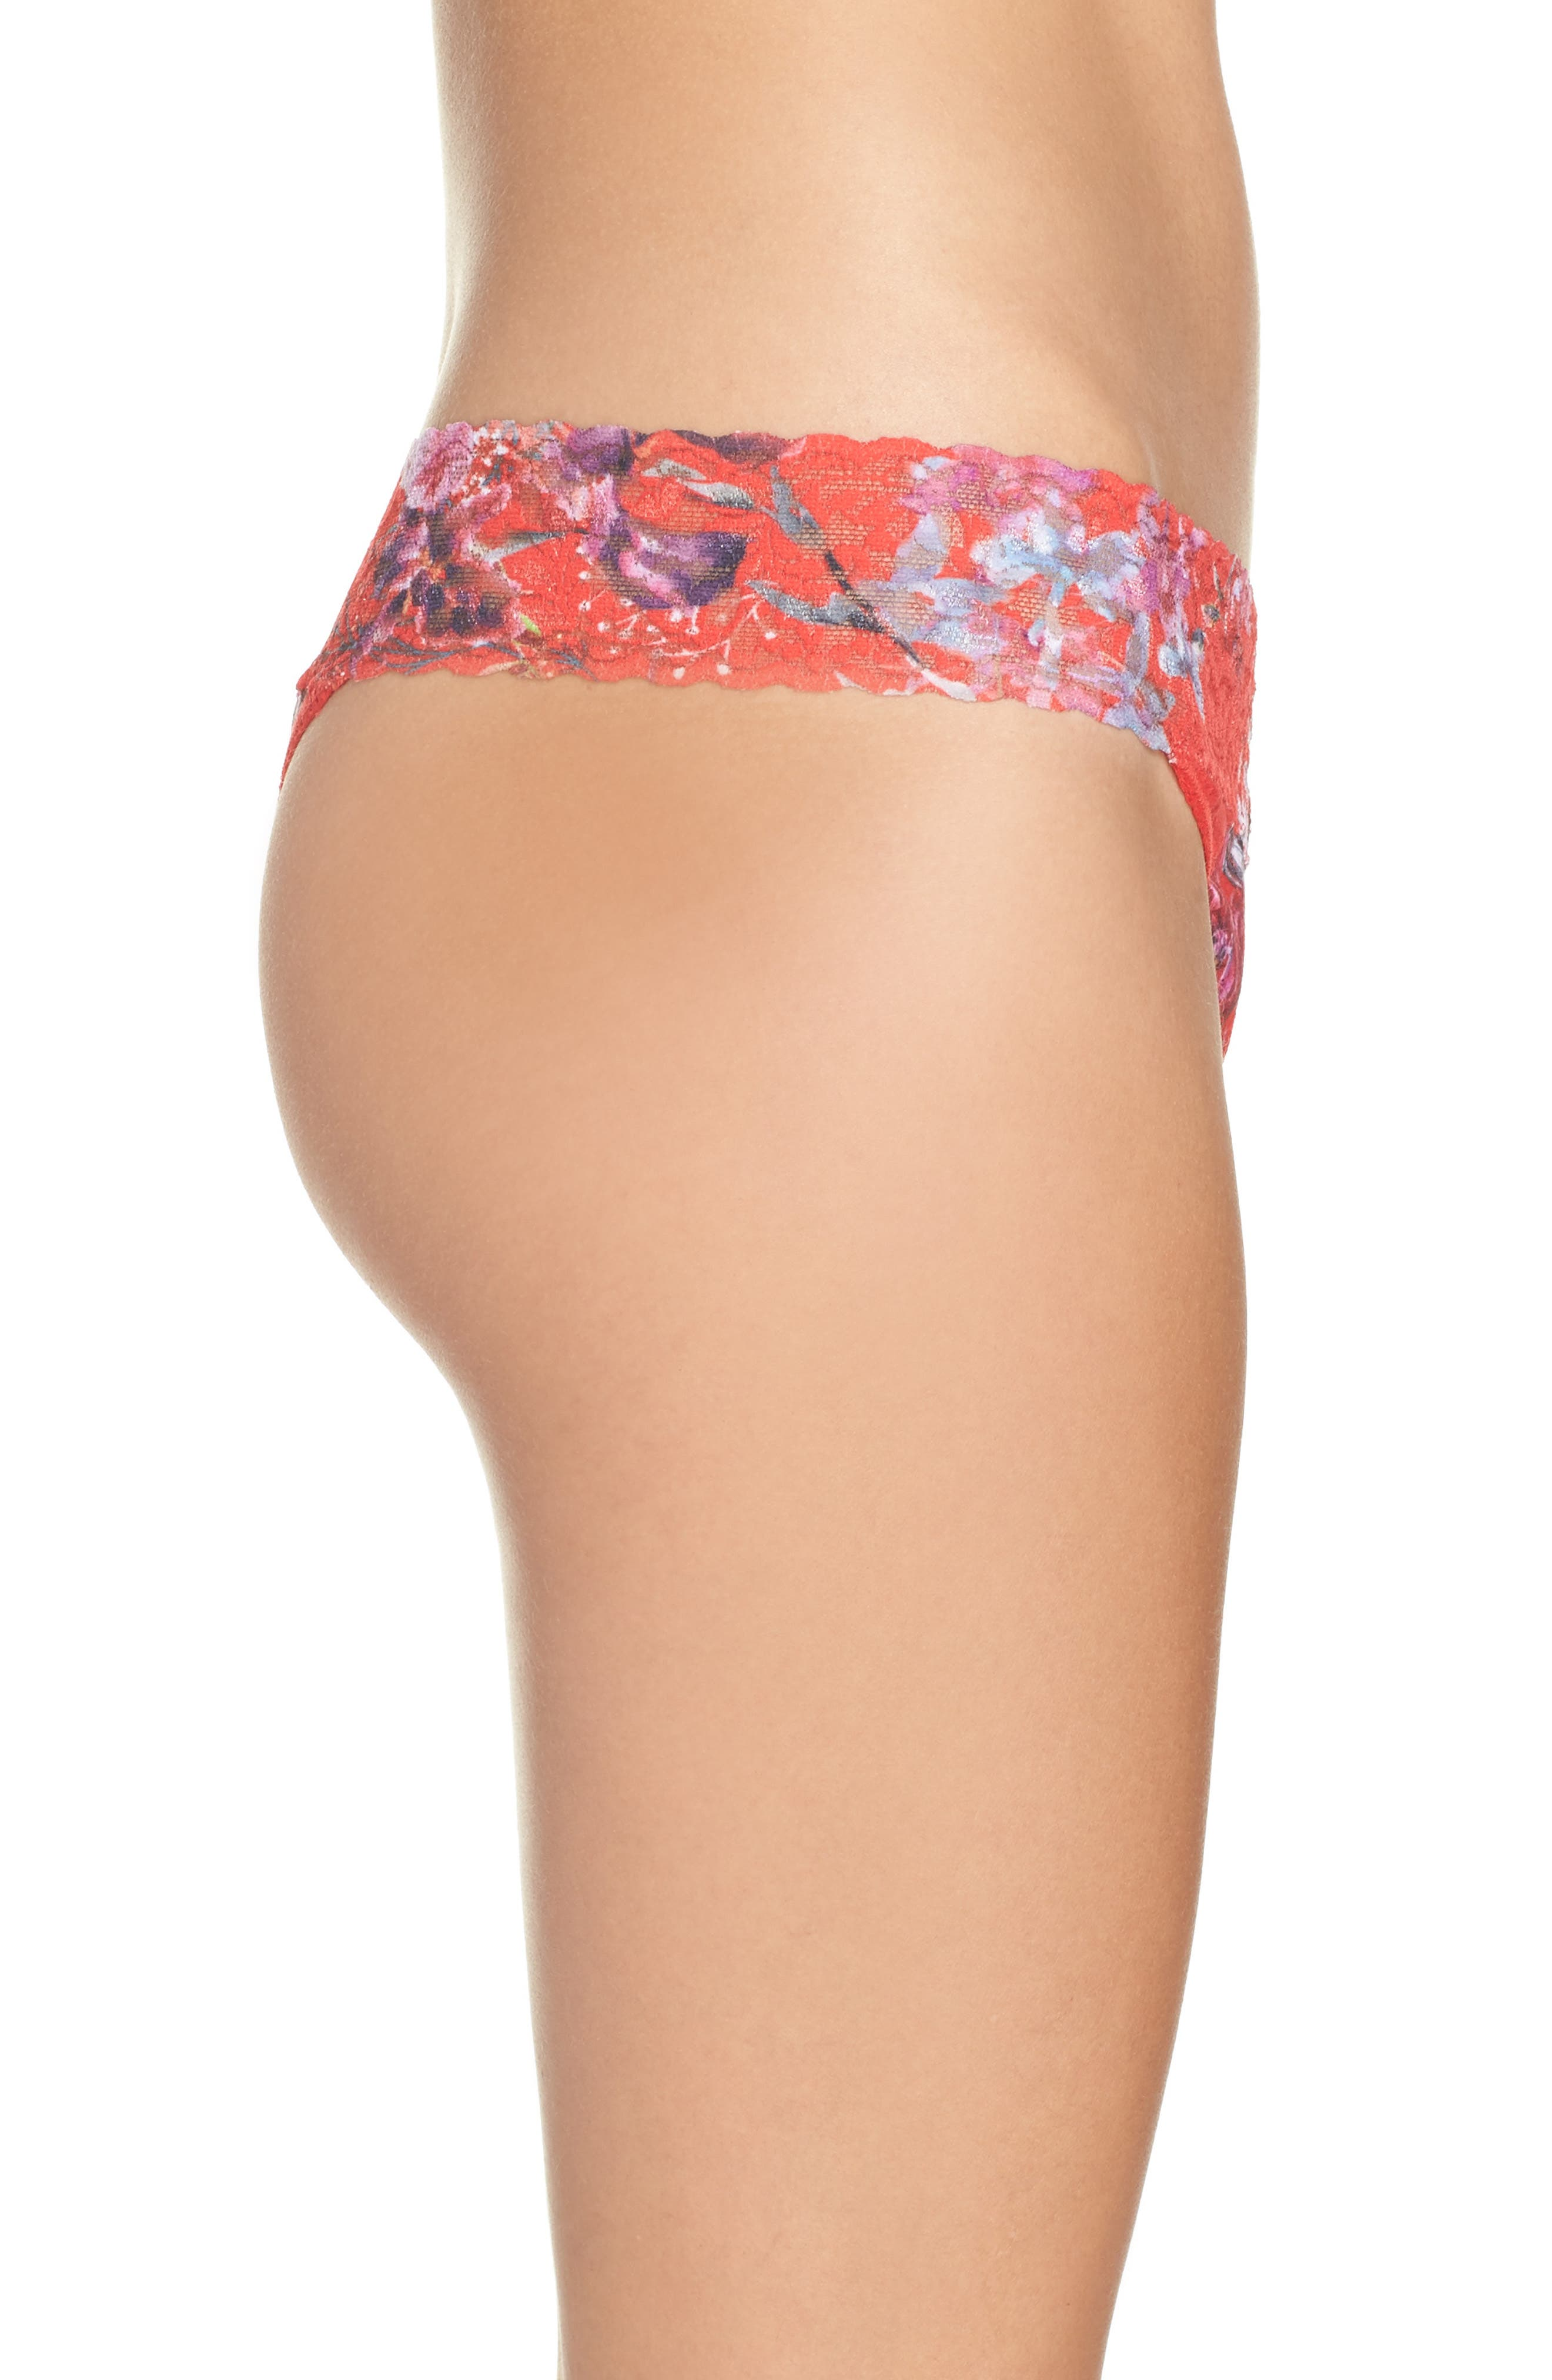 Alternate Image 3  - Hanky Panky Fiery Floral Original Rise Thong